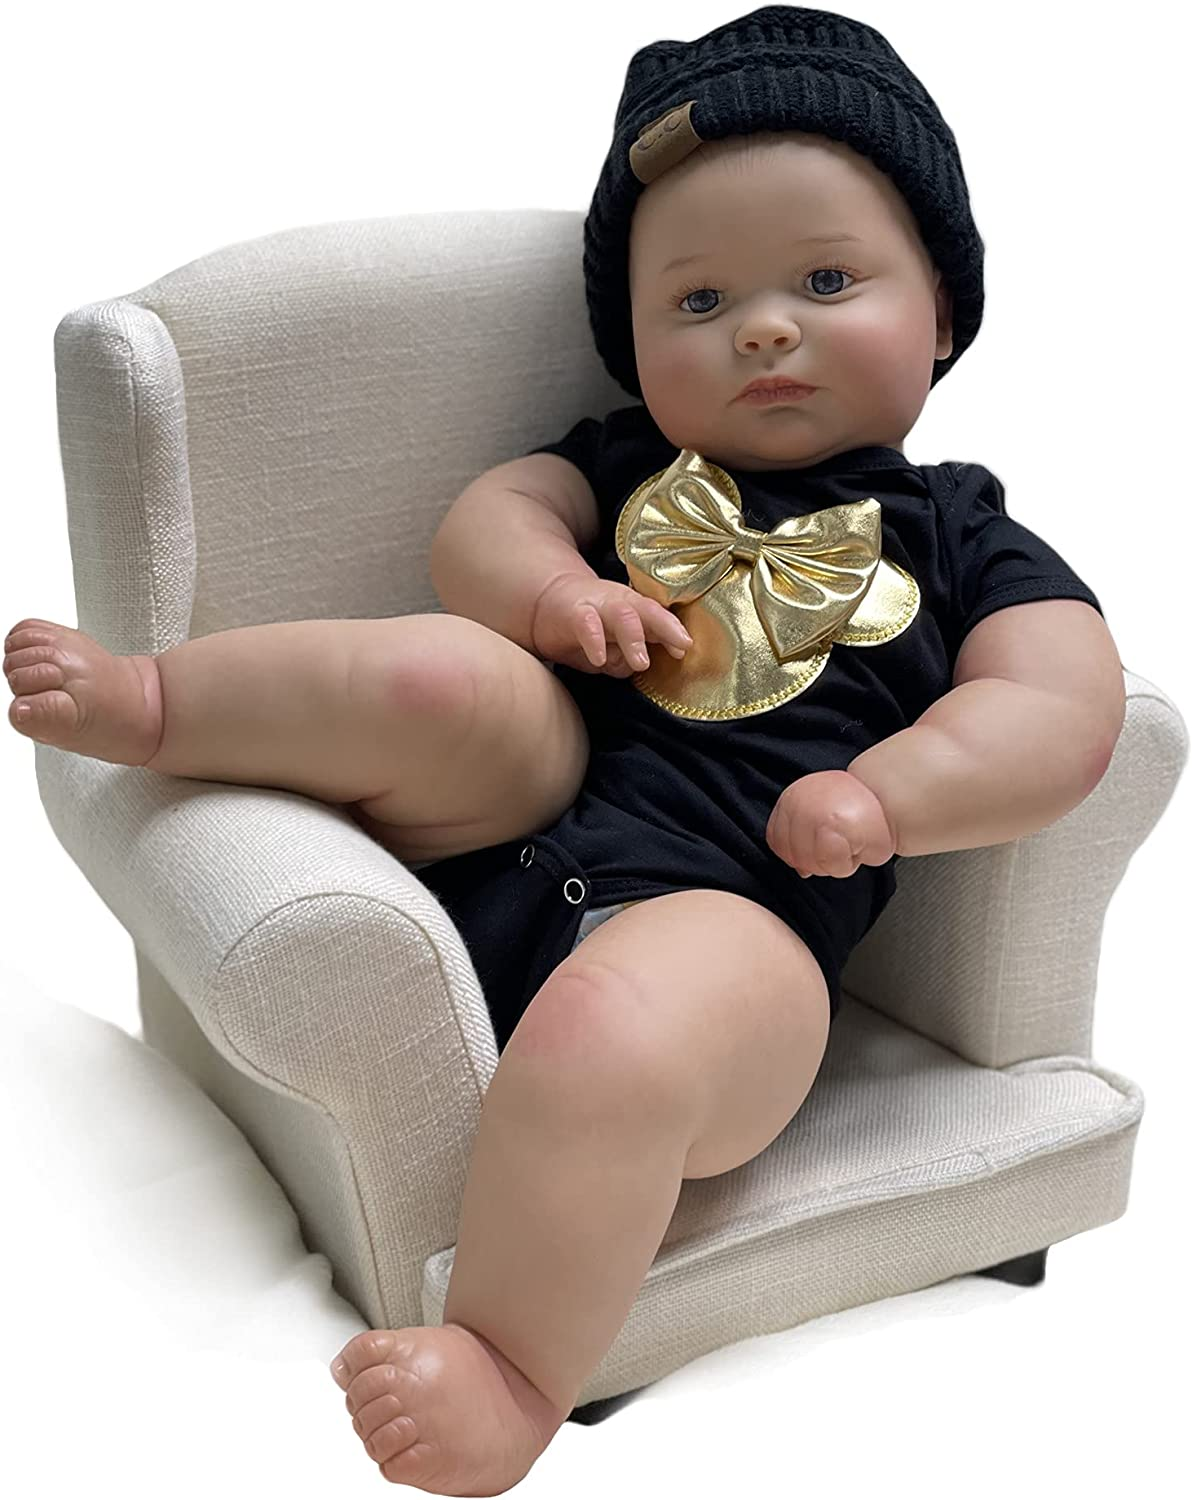 Japan's largest assortment Adolly Reborn Baby Dolls 24 We OFFer at cheap prices Inch Realistic Newborn Big Life Real